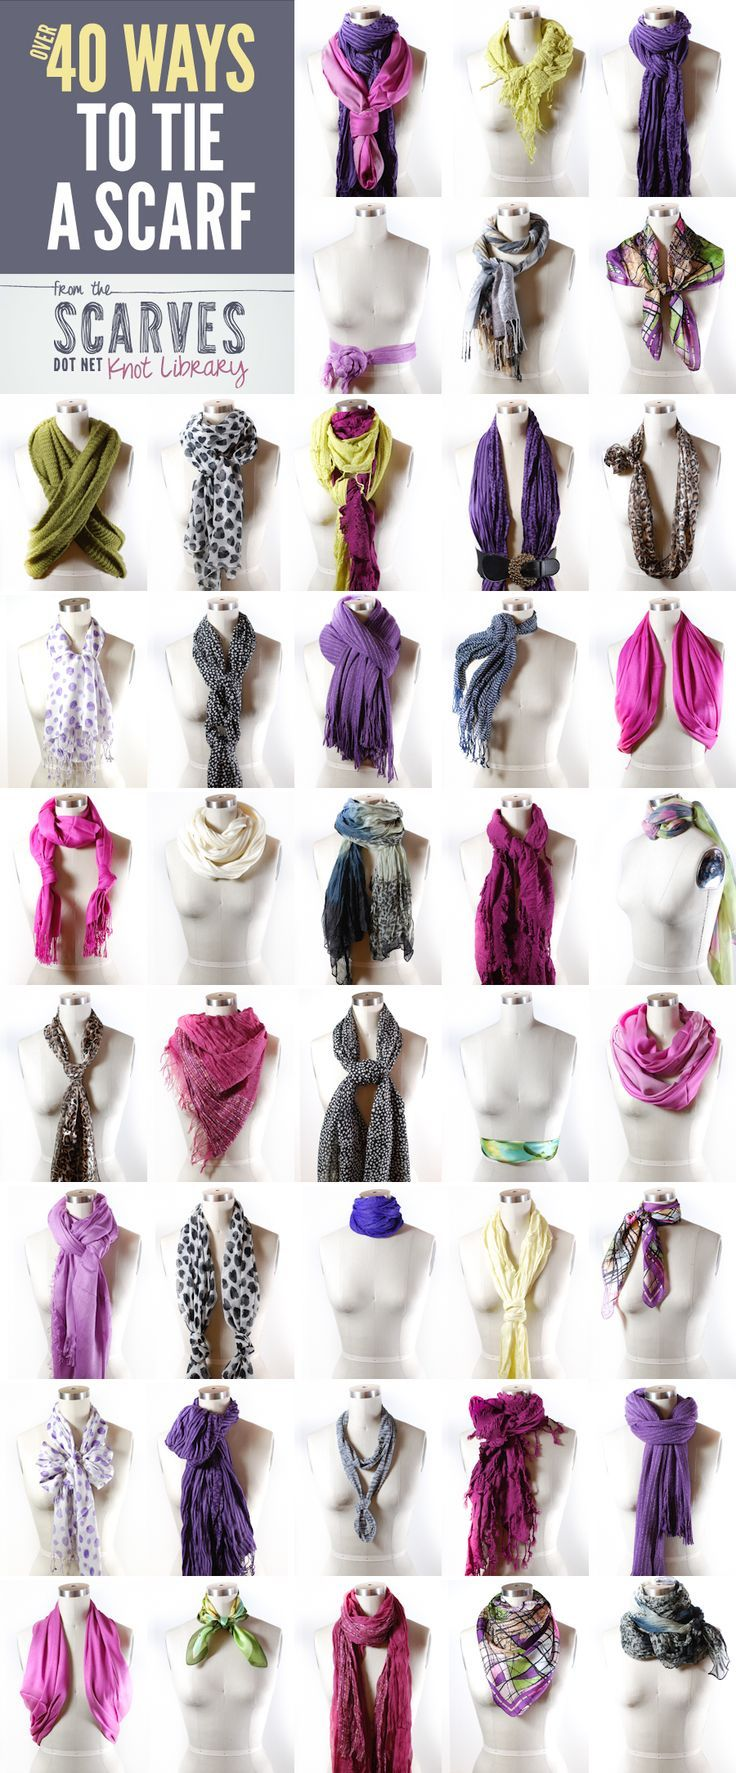 50 ways to tie a scarf                                                                                                                                                                                 More